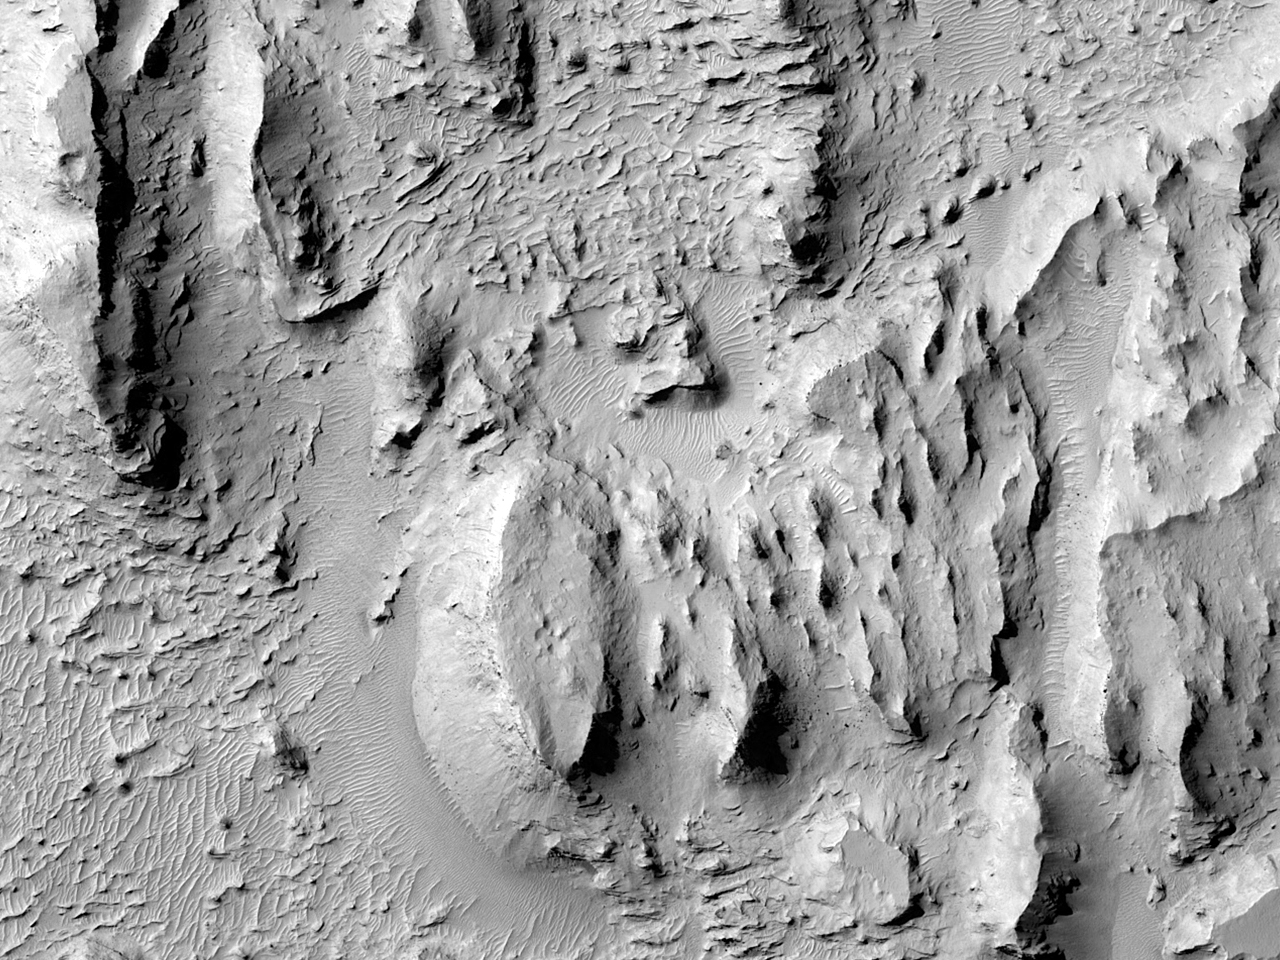 Delta-Like Lobes in Aeolis Dorsa